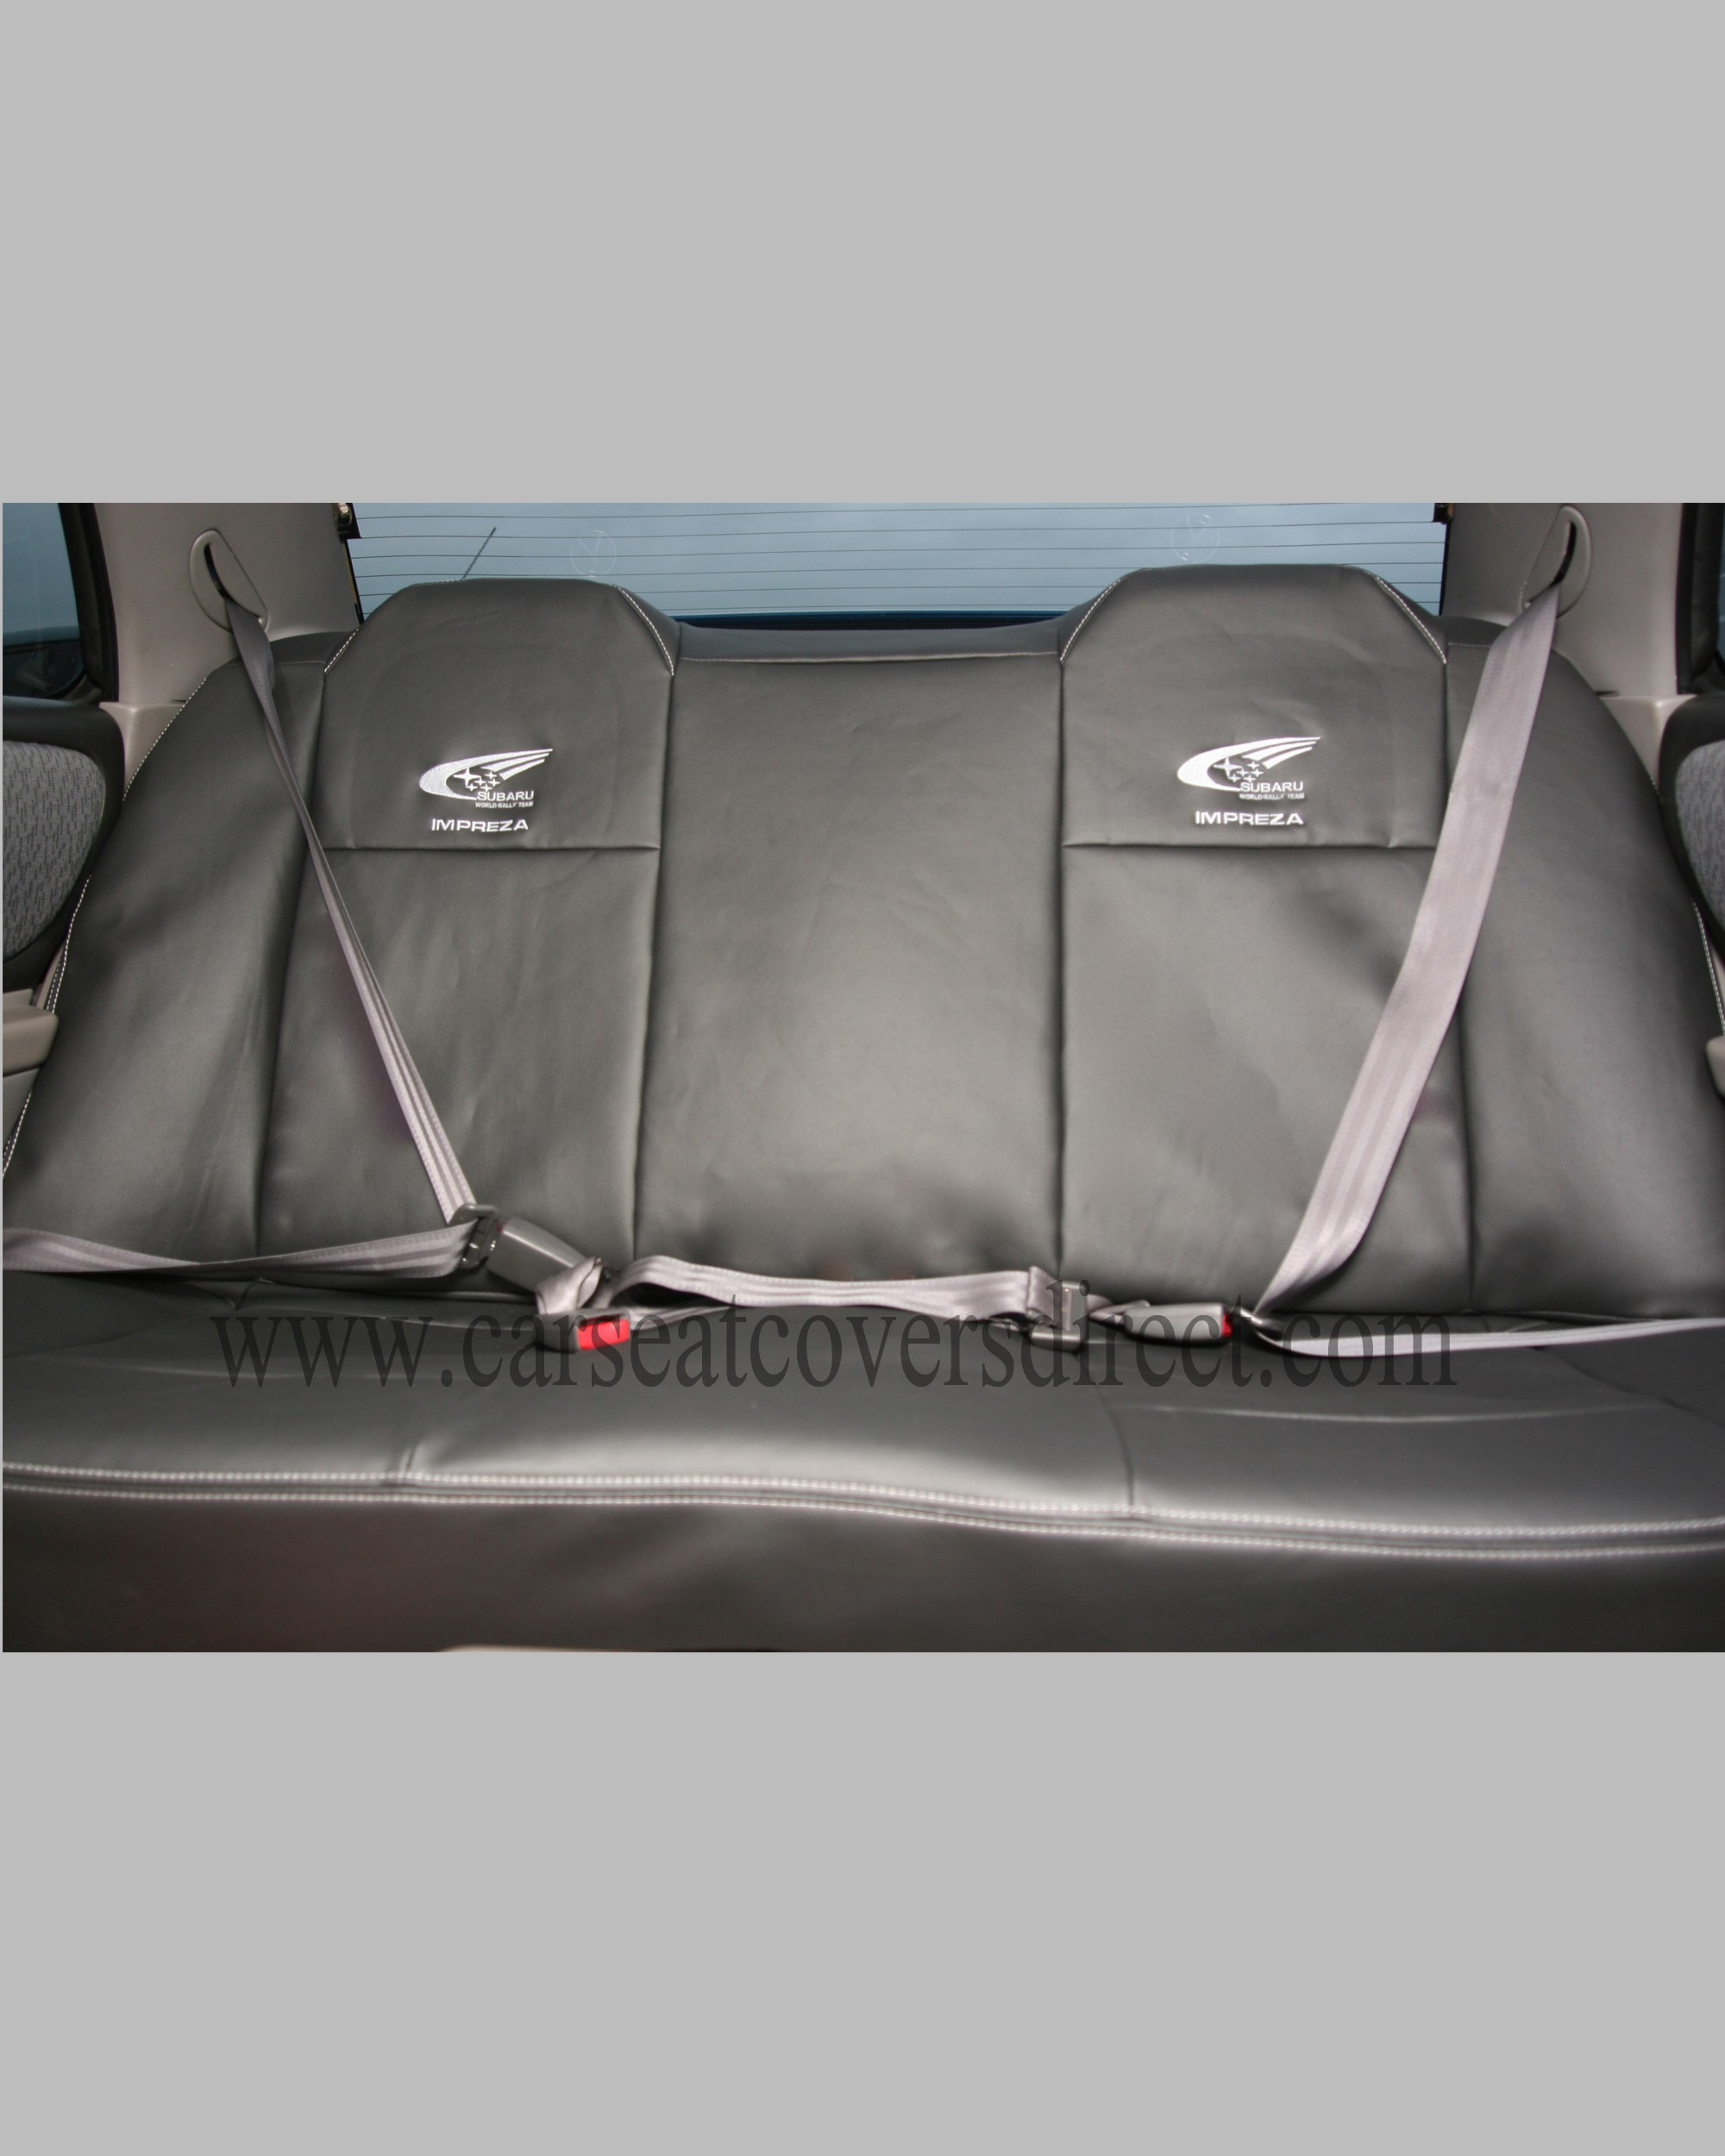 custom subaru impreza seat covers custom car seat covers custom tailored seat covers car. Black Bedroom Furniture Sets. Home Design Ideas